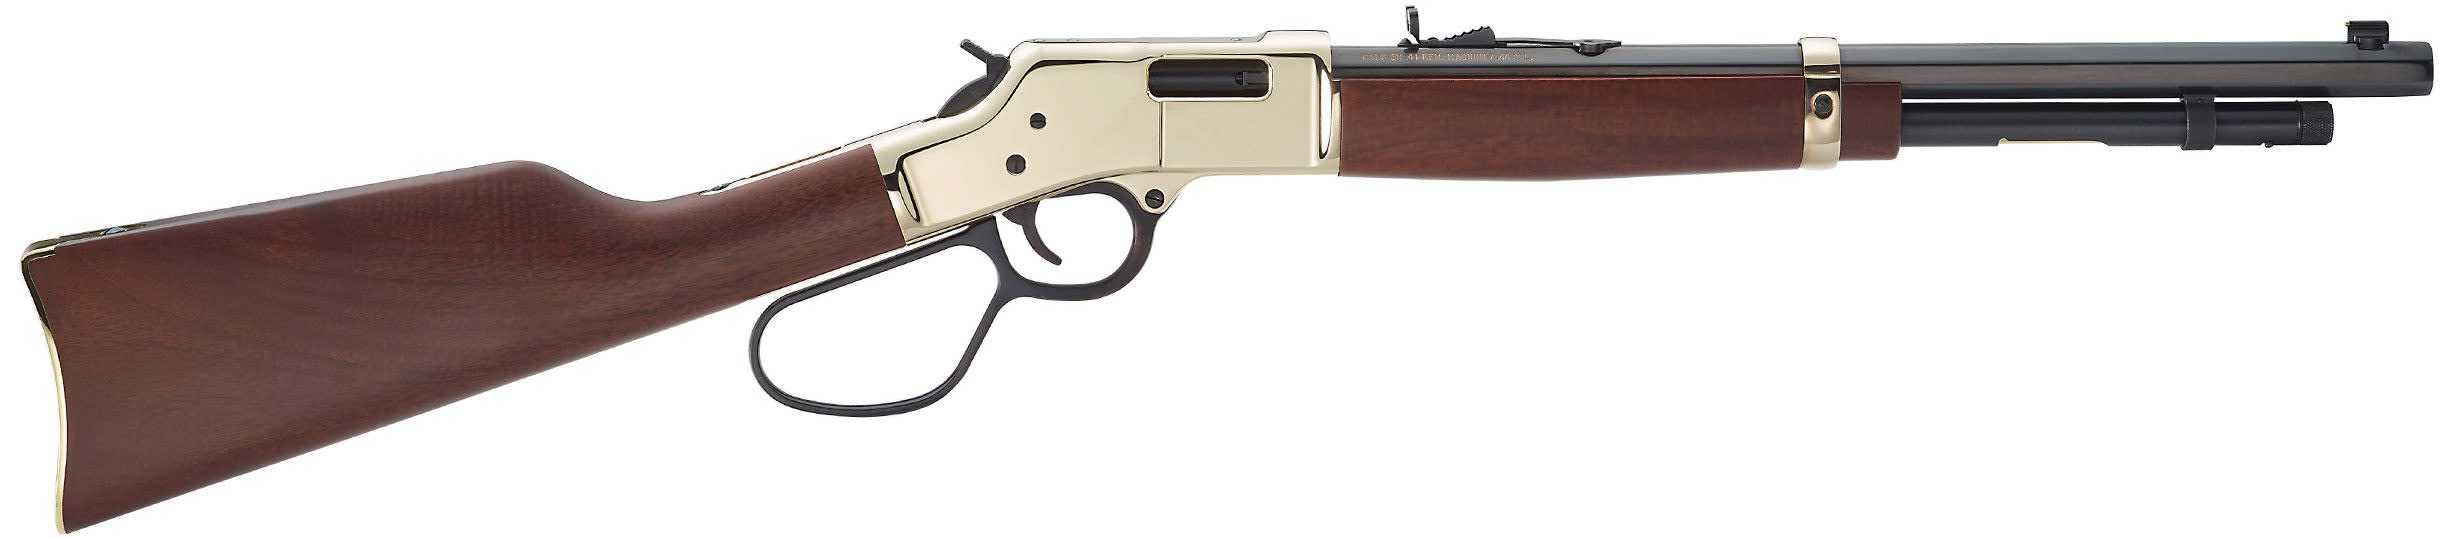 Henry Big Boy Carbine Lever-Action Rifle - 41 Rem Mag 16.5